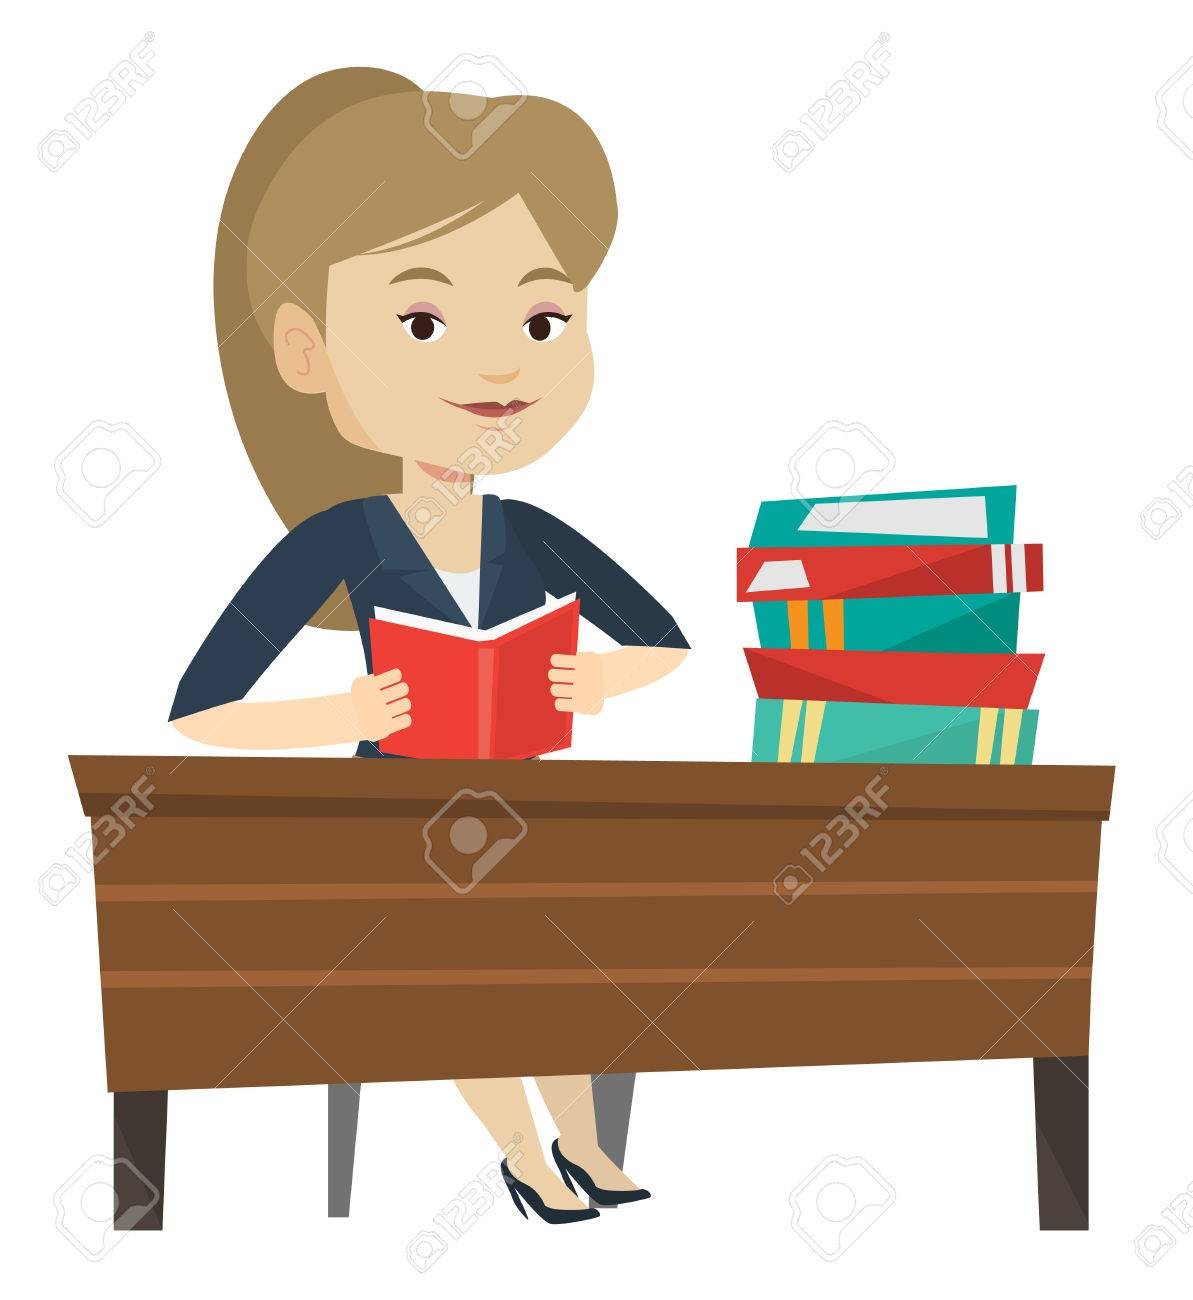 Student Sitting At The Table And Holding A Book In Hands. Smiling Student  Reading A